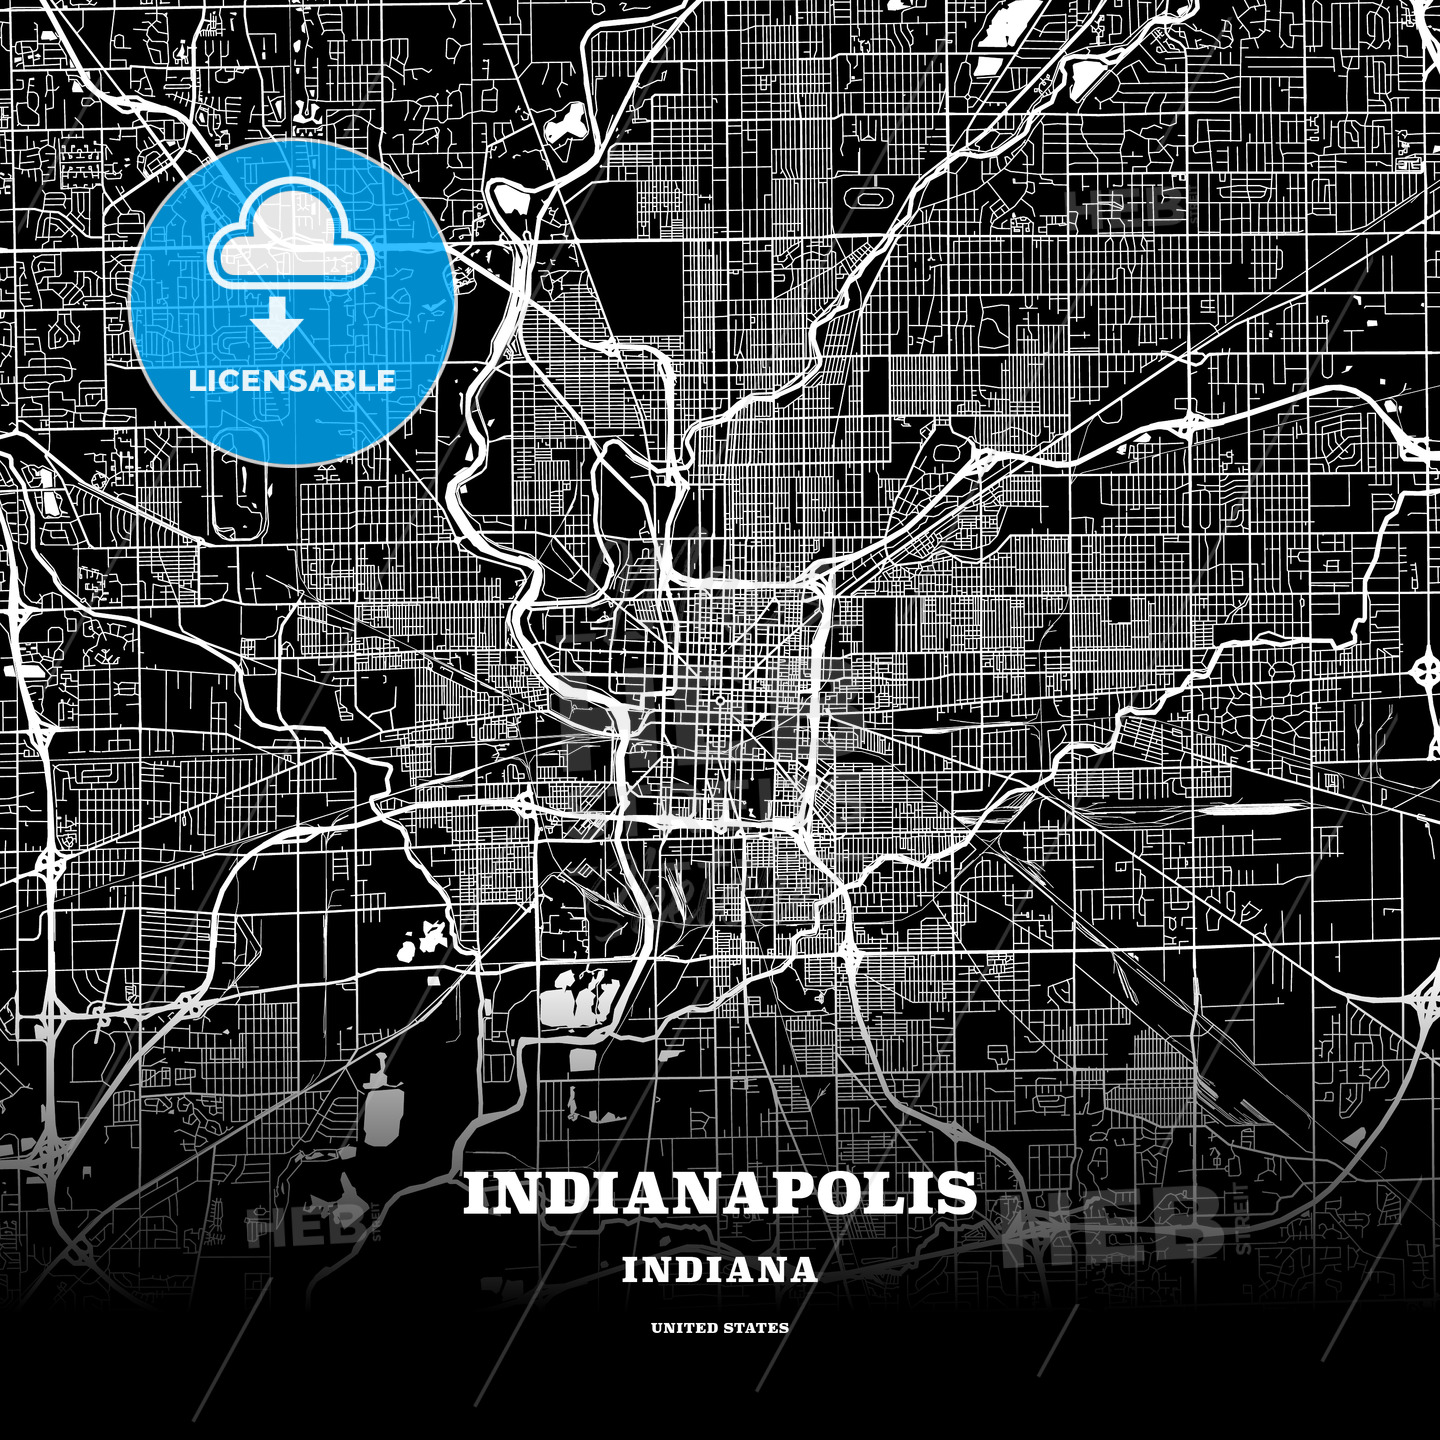 Black map poster template of Indianapolis, Indiana, USA on indianapolis crime map, indianapolis mall, indianapolis township map, indianapolis road map, indianapolis city streets, indianapolis on map, indianapolis central library, indianapolis water park, indianapolis county map, indianapolis street map, indianapolis news anchors, indianapolis school buses, indianapolis indiana, indianapolis white river state park, indianapolis ghetto, indianapolis warren central high school, indiana location in the usa, indianapolis train station,